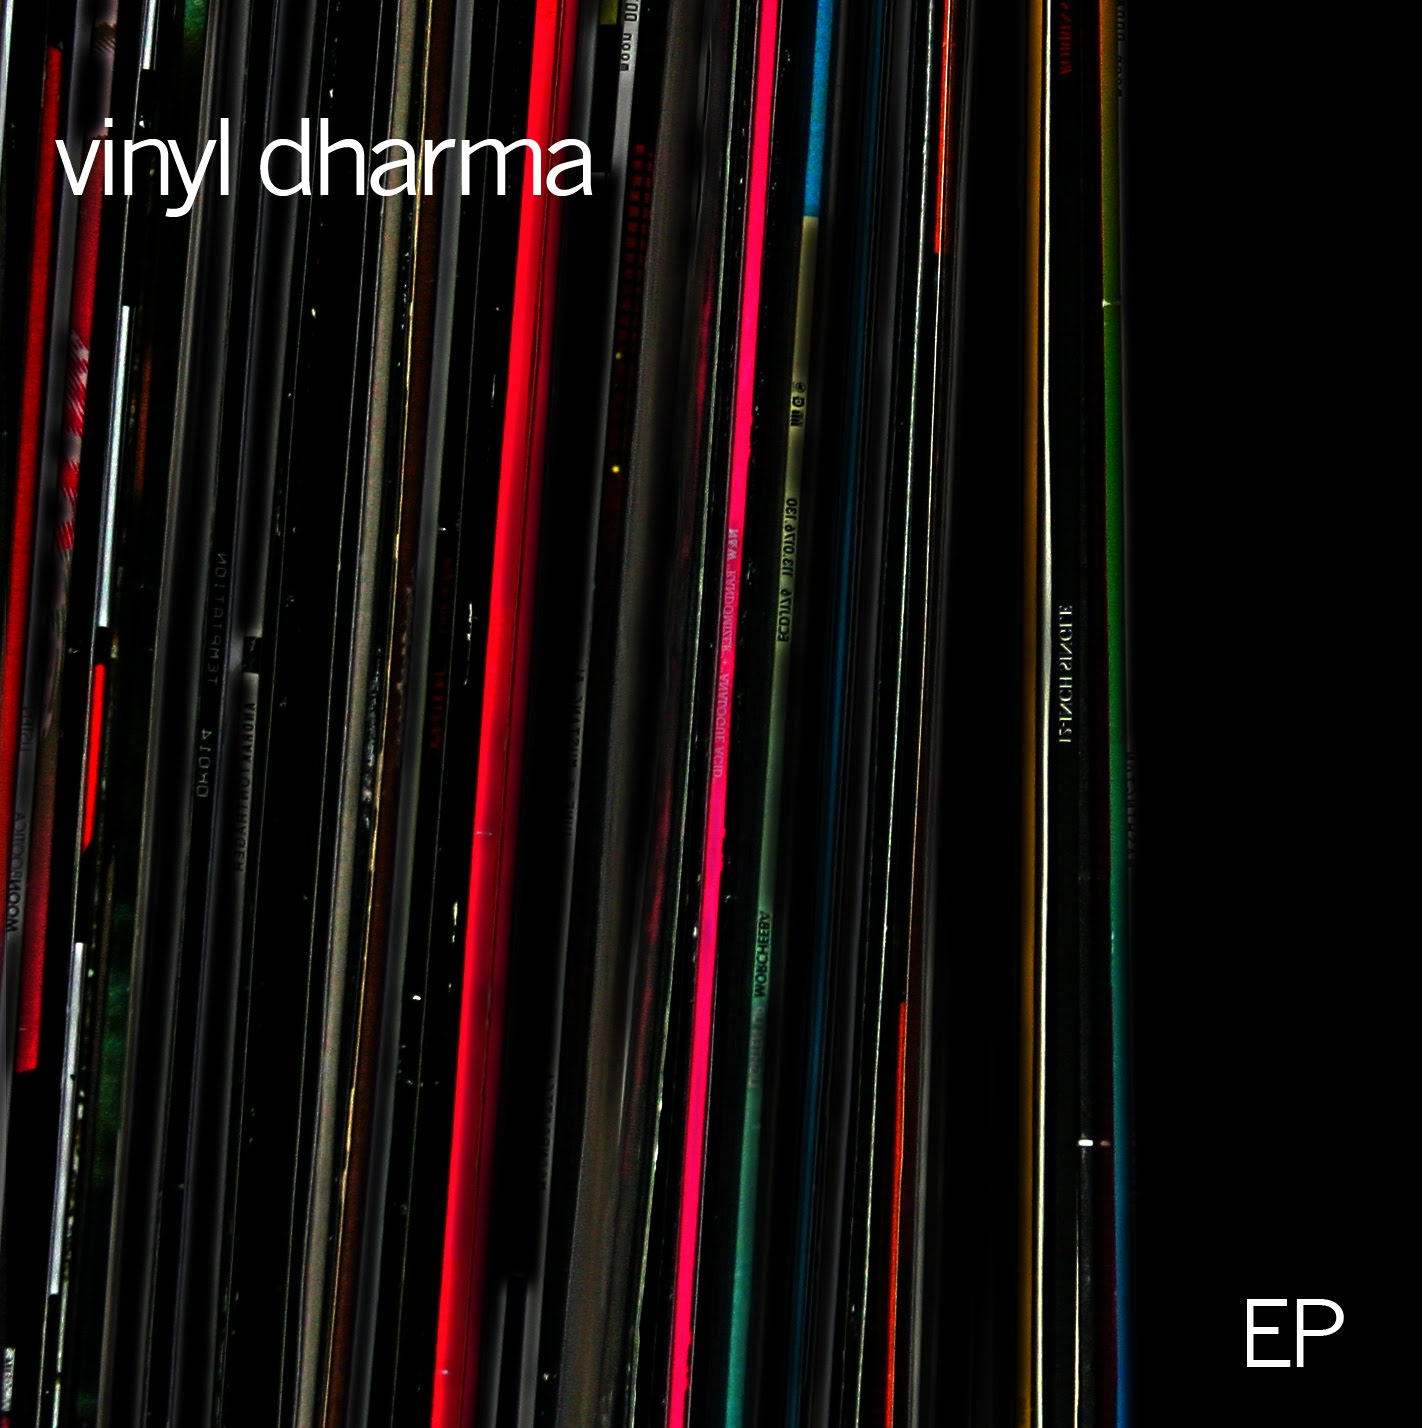 ian 39 s music blog album review vinyl dharma ep. Black Bedroom Furniture Sets. Home Design Ideas